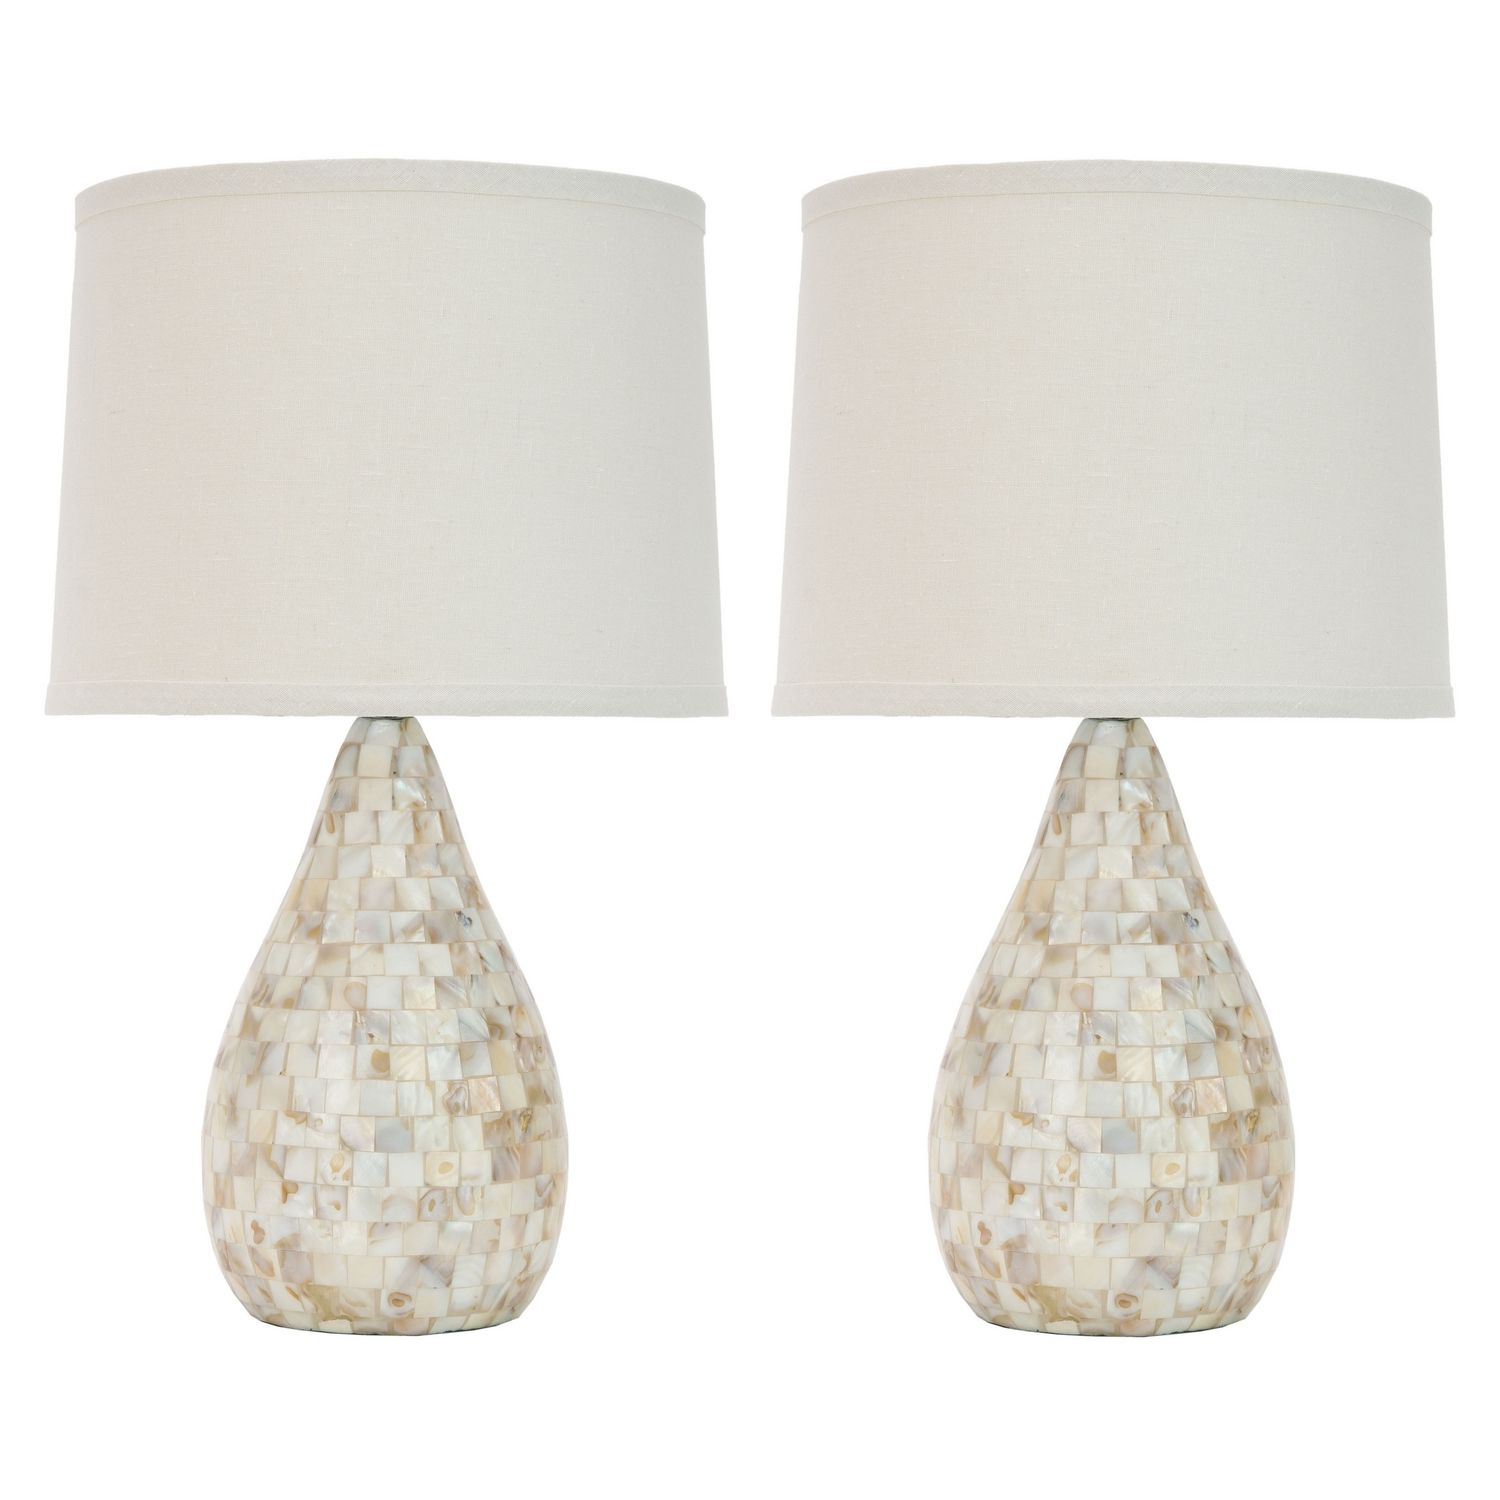 Lampe de table Laurelie (lot de 2) - Blanc / Nacré, Safavieh